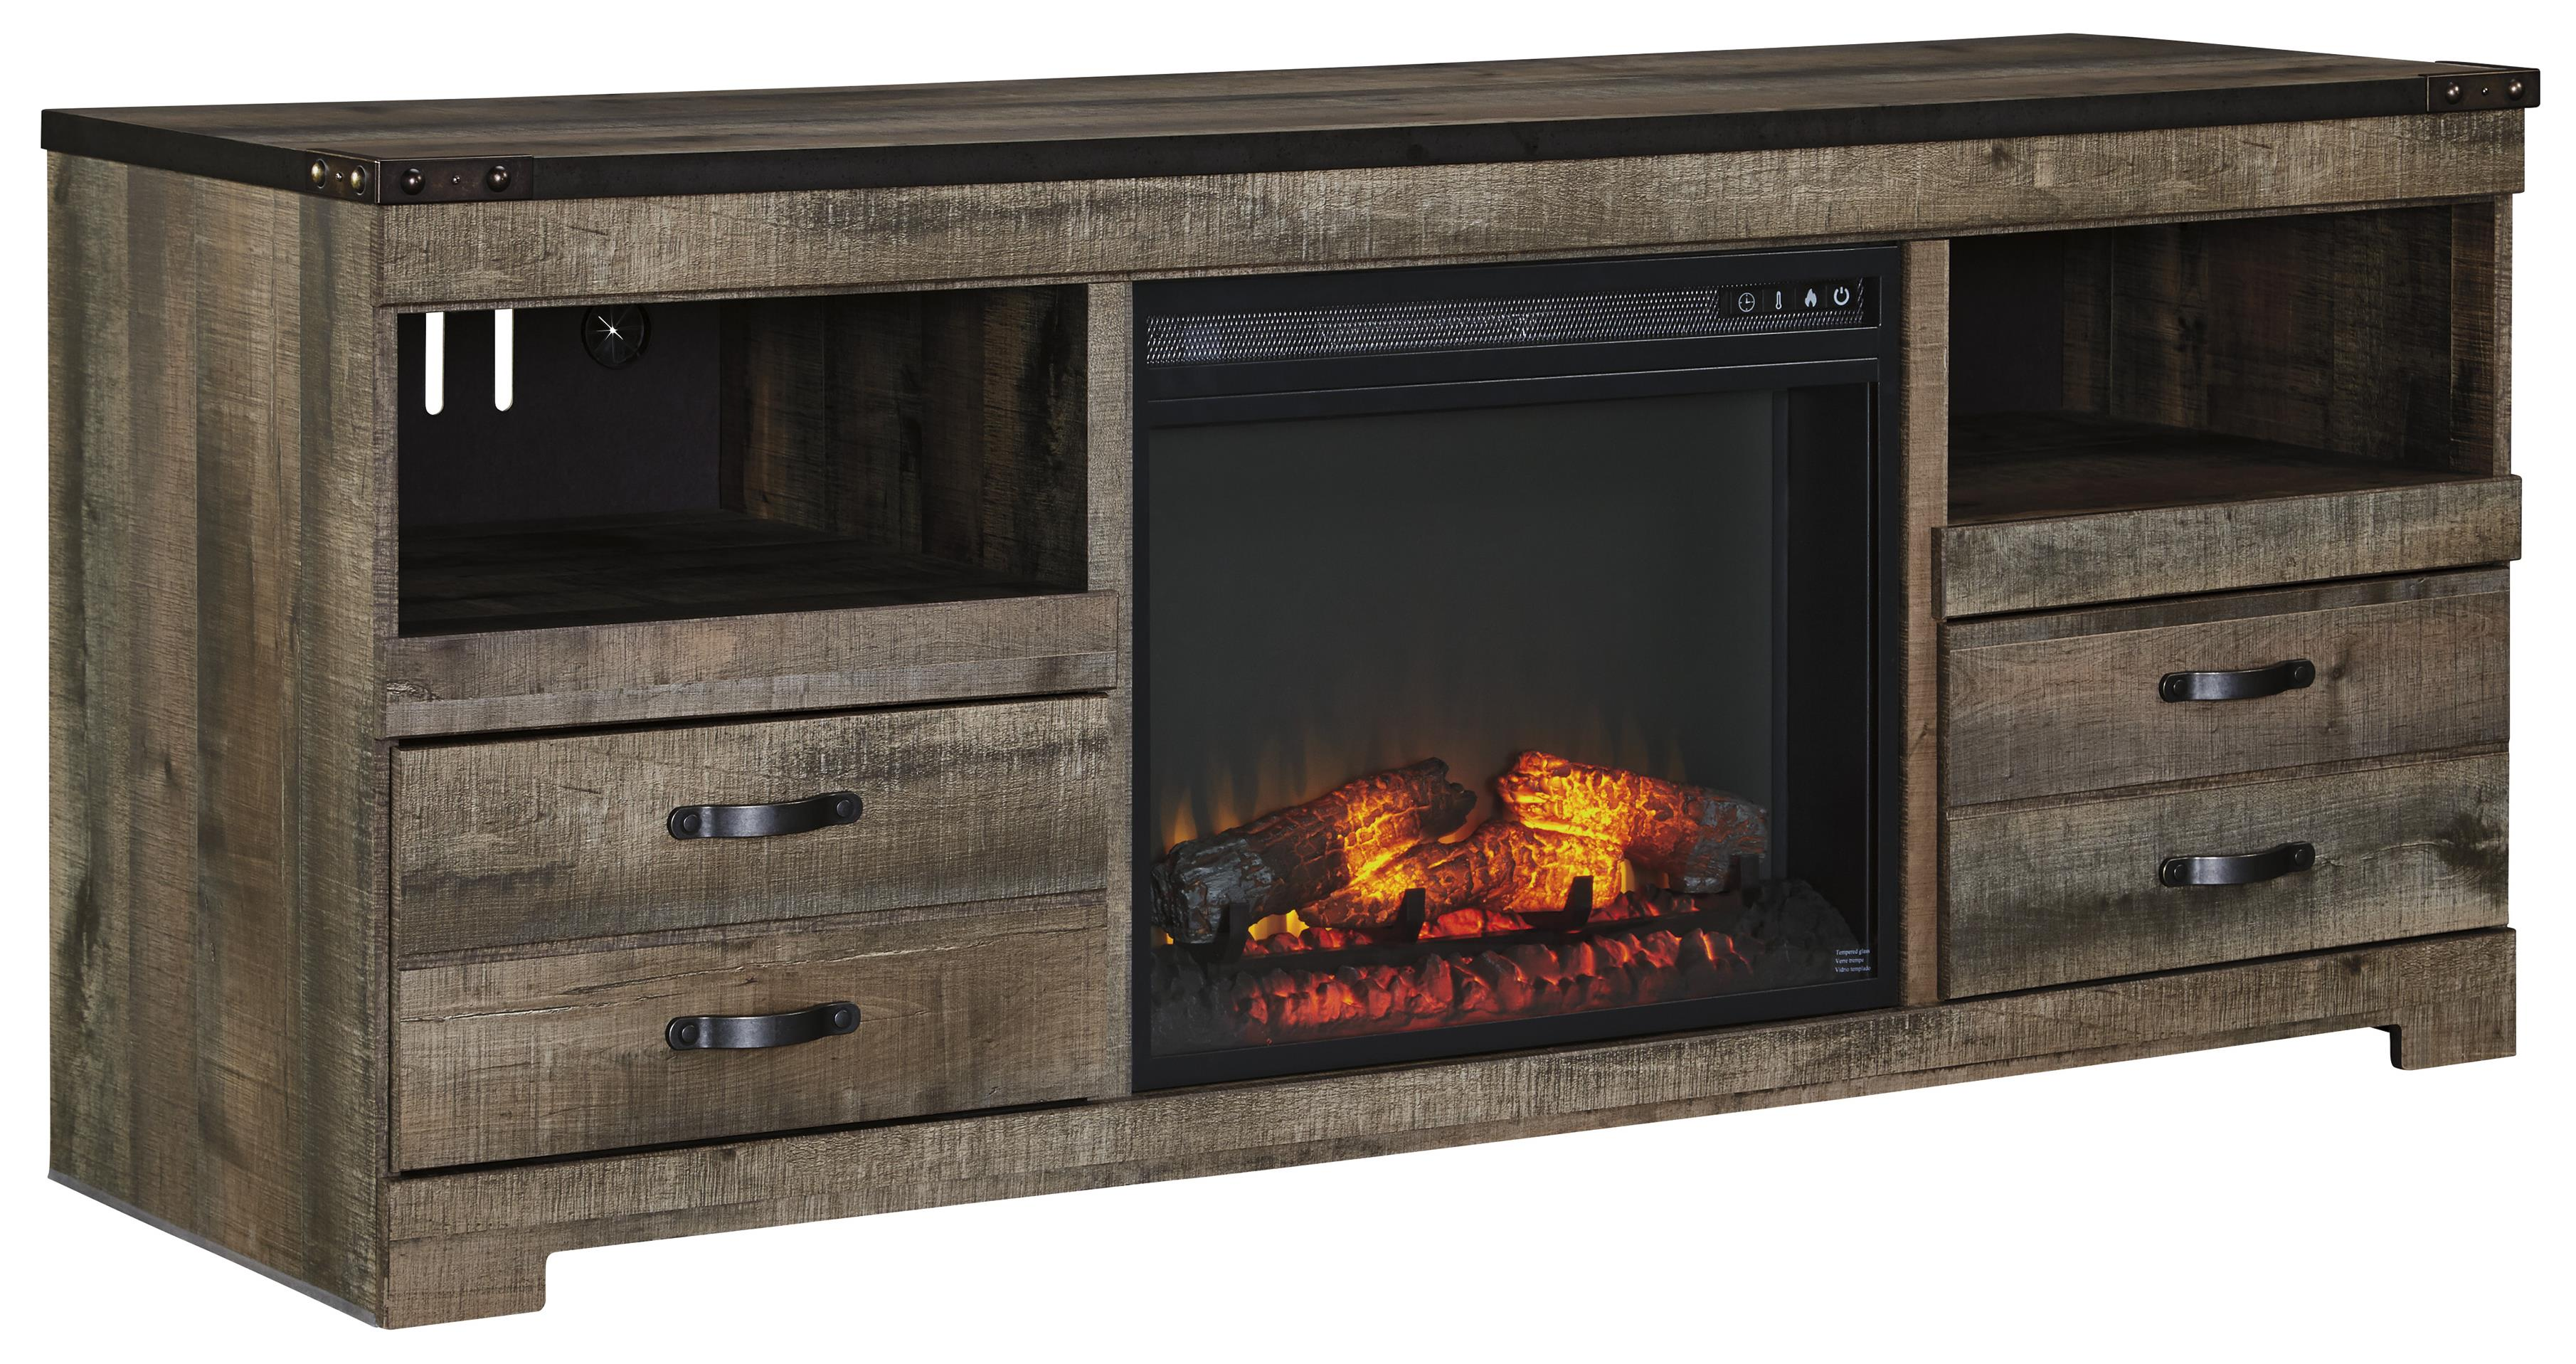 Meuble Vestibule Rustic Large Tv Stand With Fireplace Insert By Signature